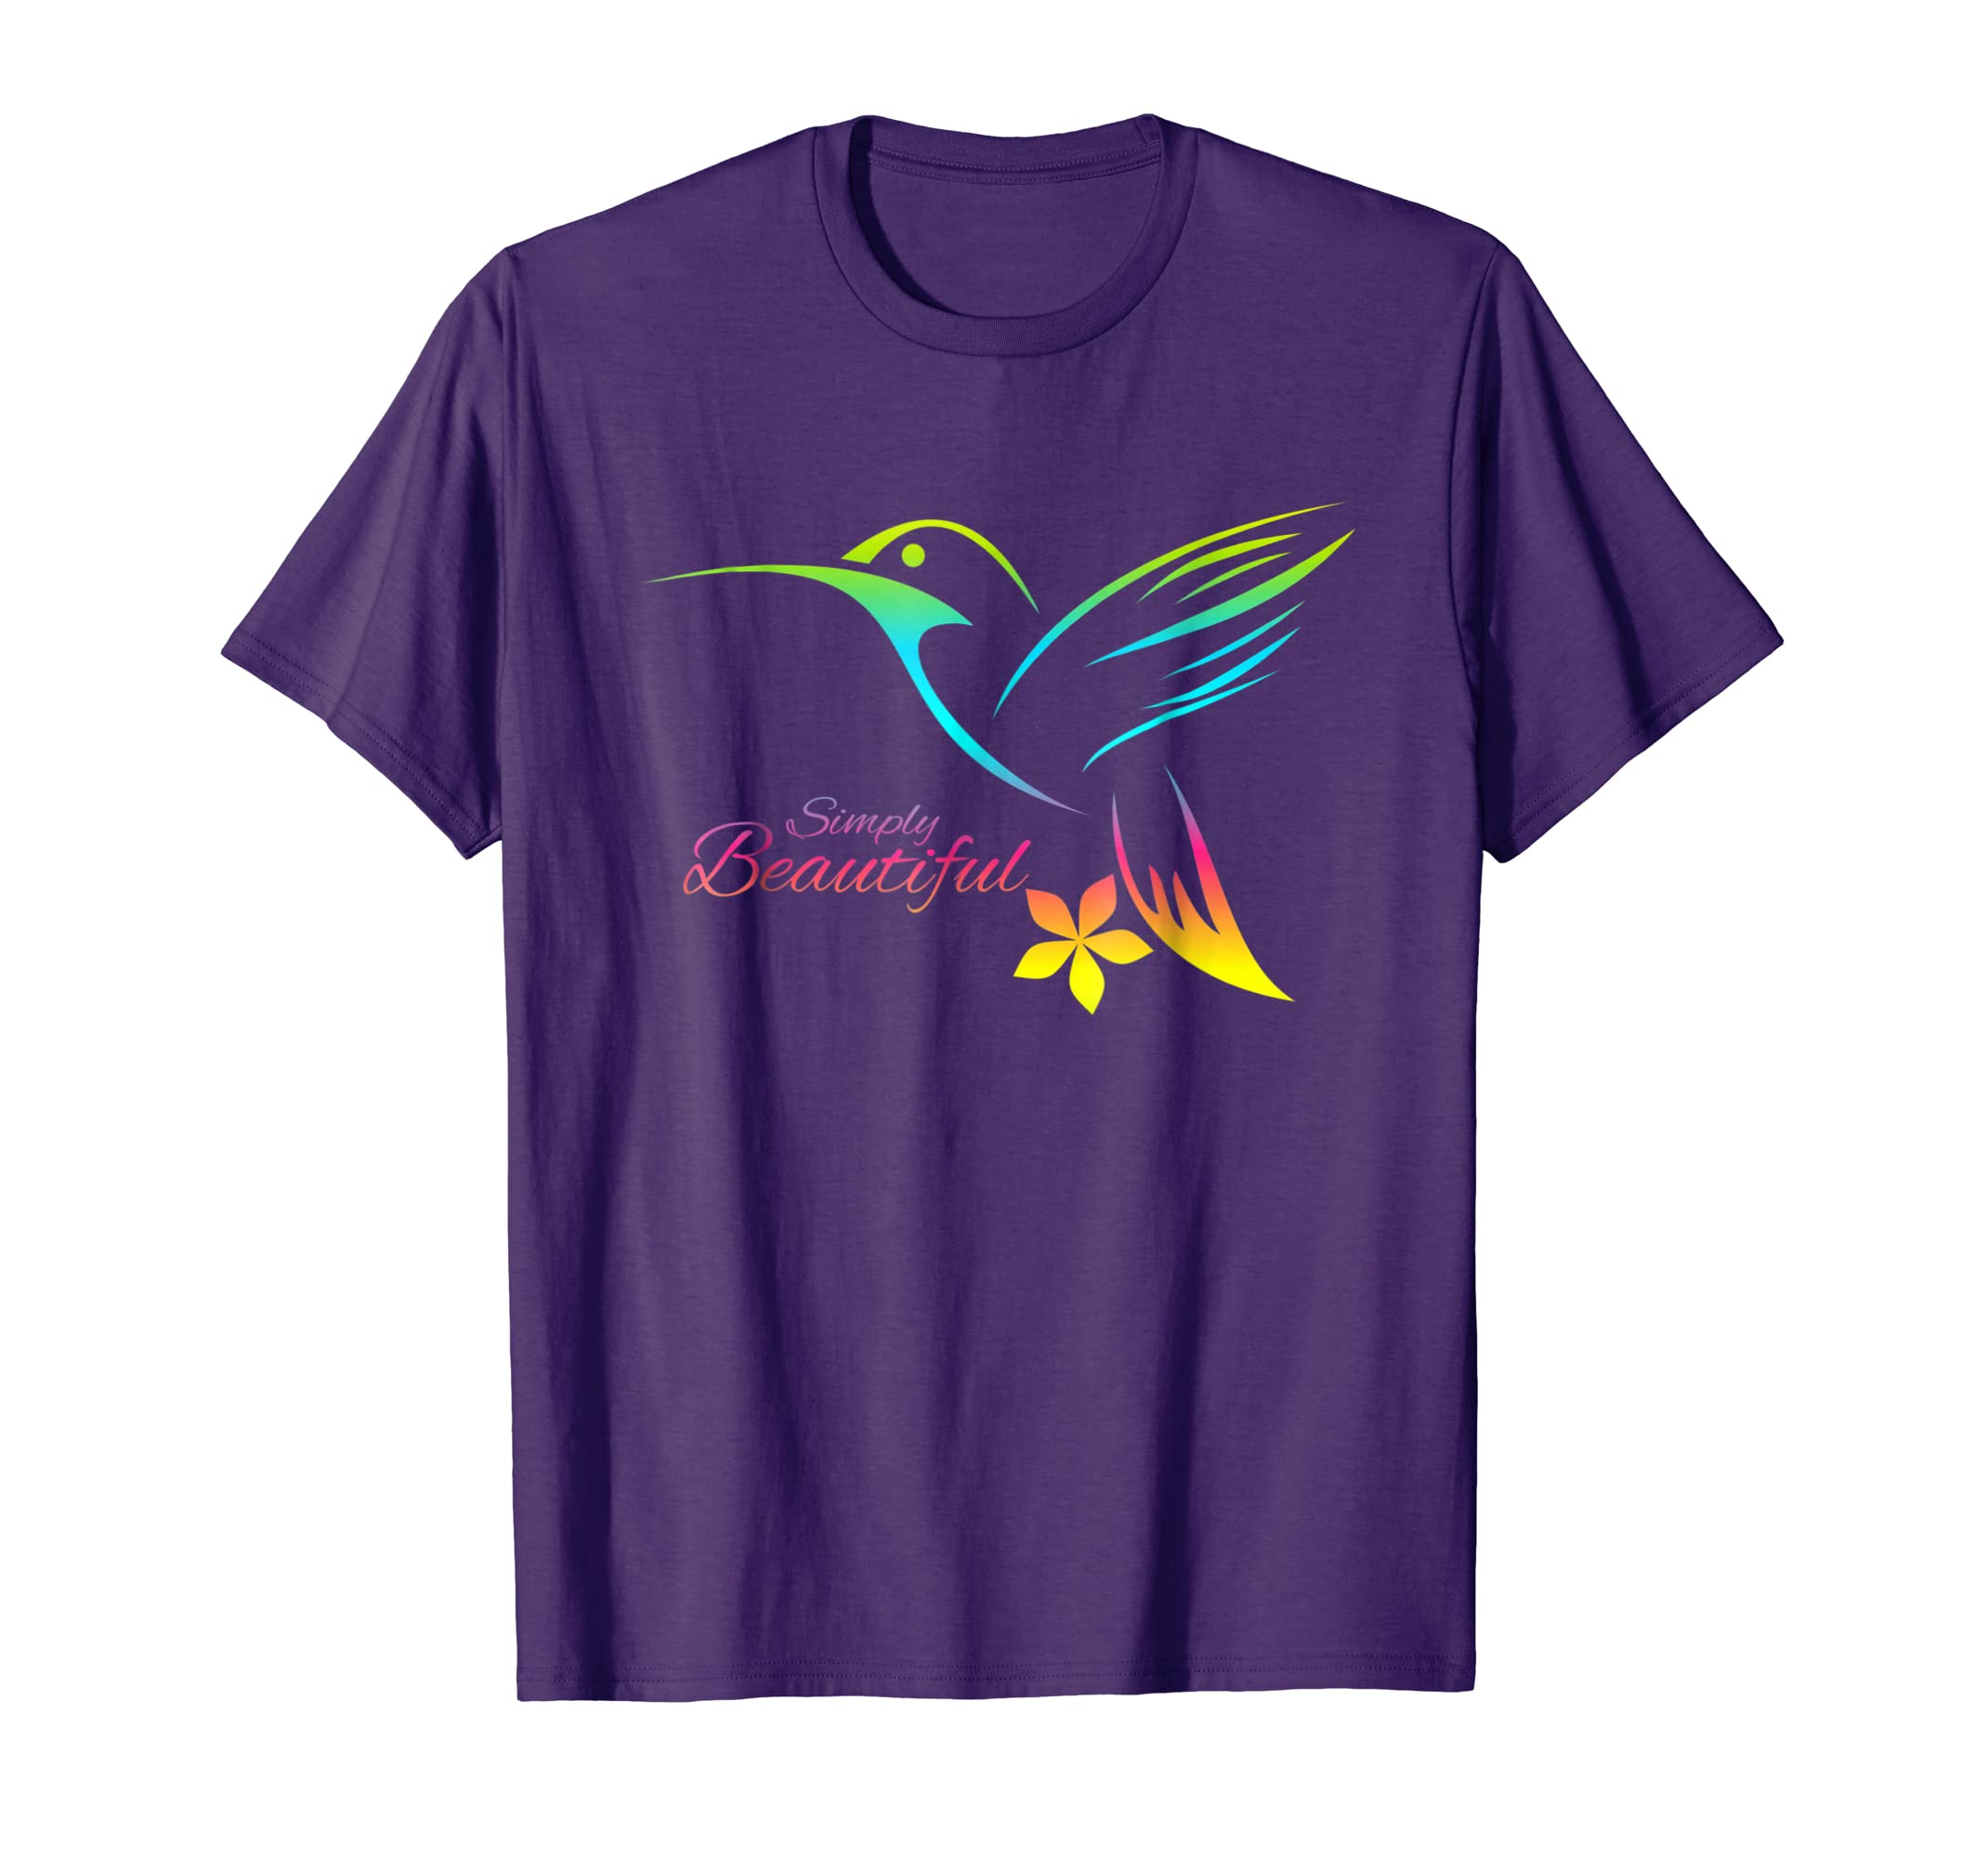 I Love Humming-bird shirt for women Simply Beautiful-AZP